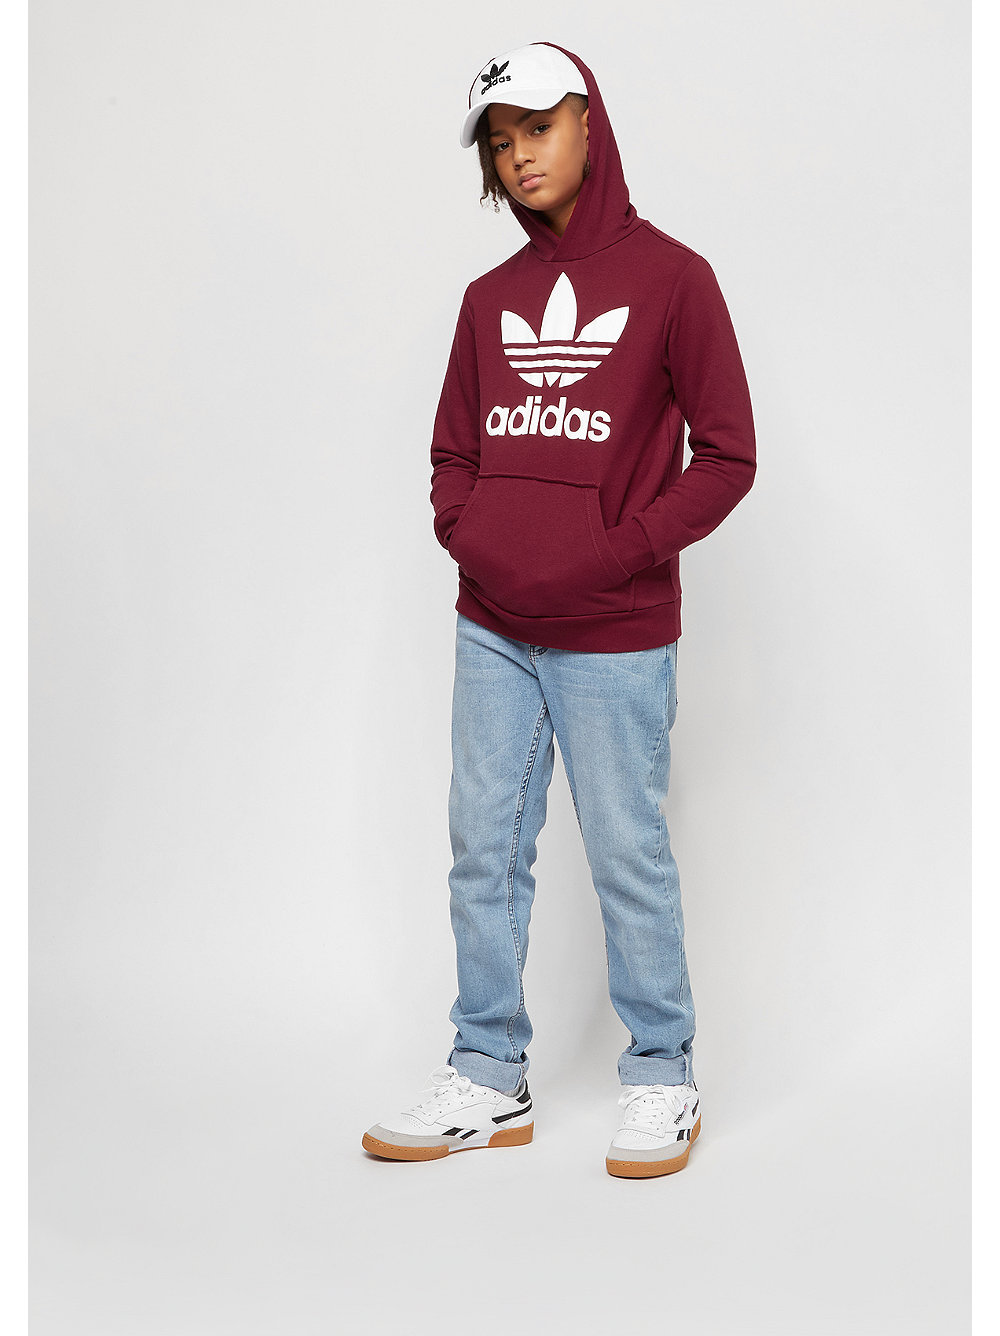 adidas kids trefoil hoodie burgundy bei snipes. Black Bedroom Furniture Sets. Home Design Ideas